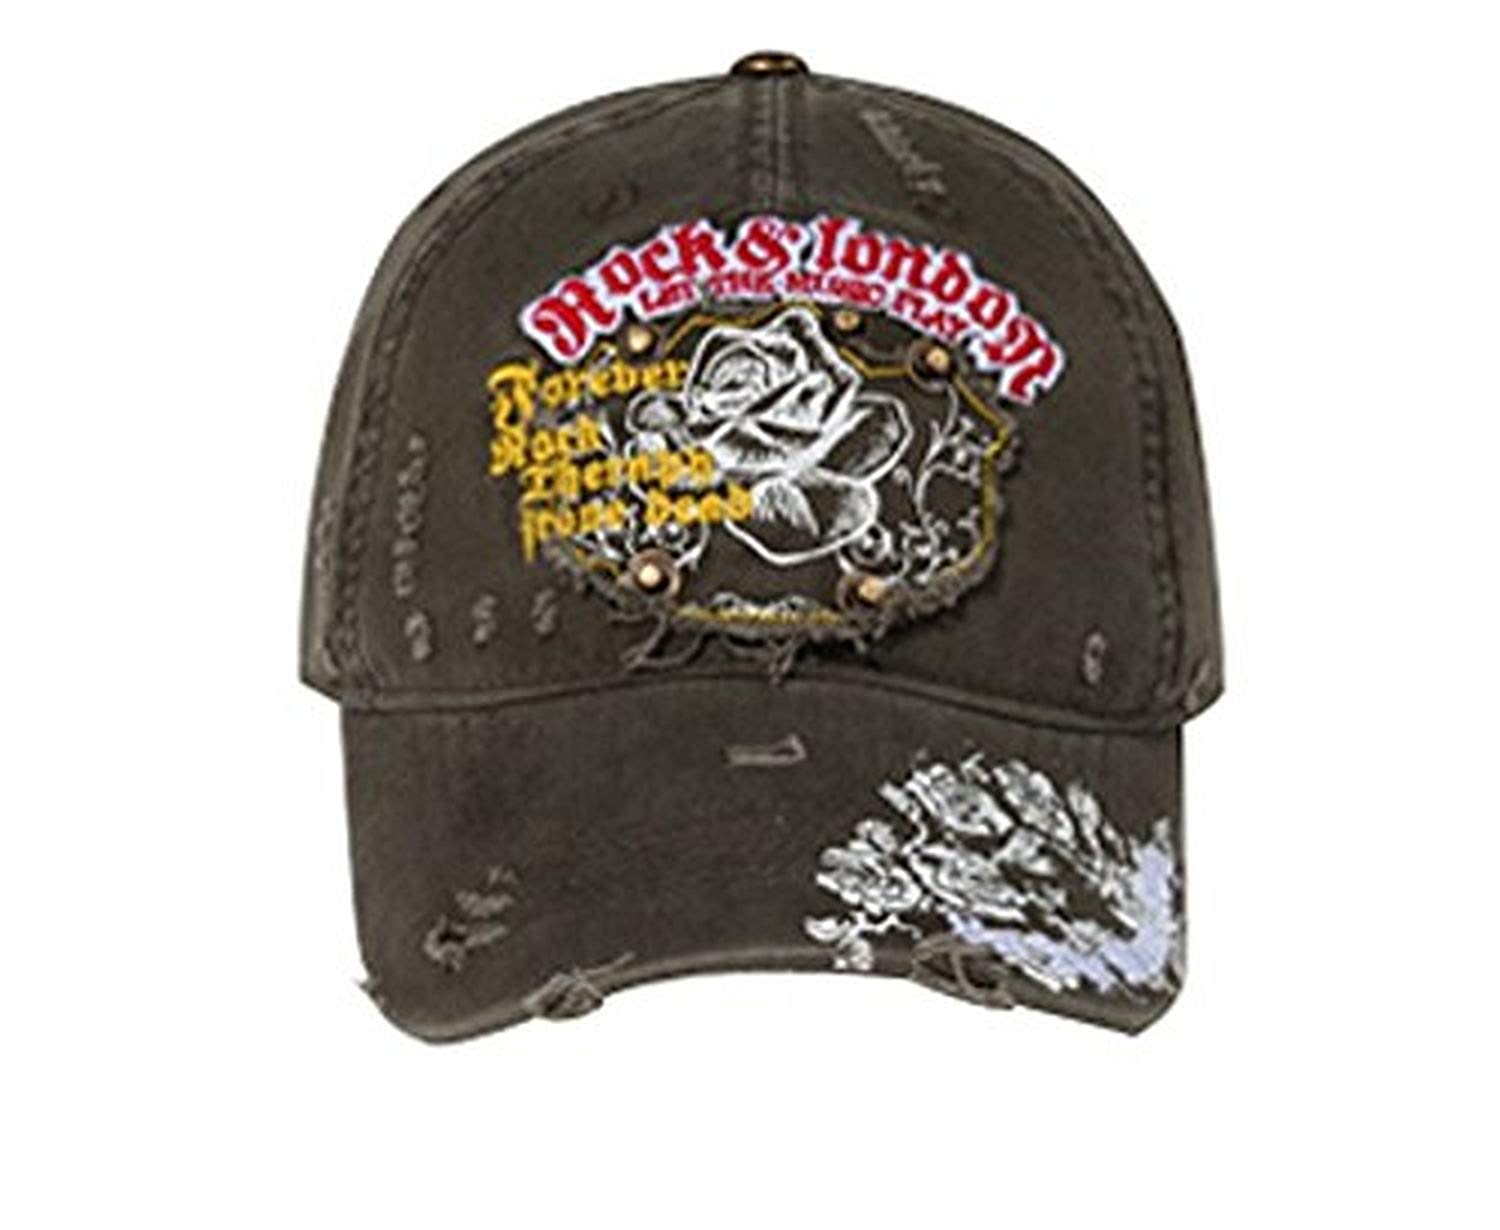 Hats & Caps Shop Printed Roses Distressed Patch with Rivets Caps - By TheTargetBuys